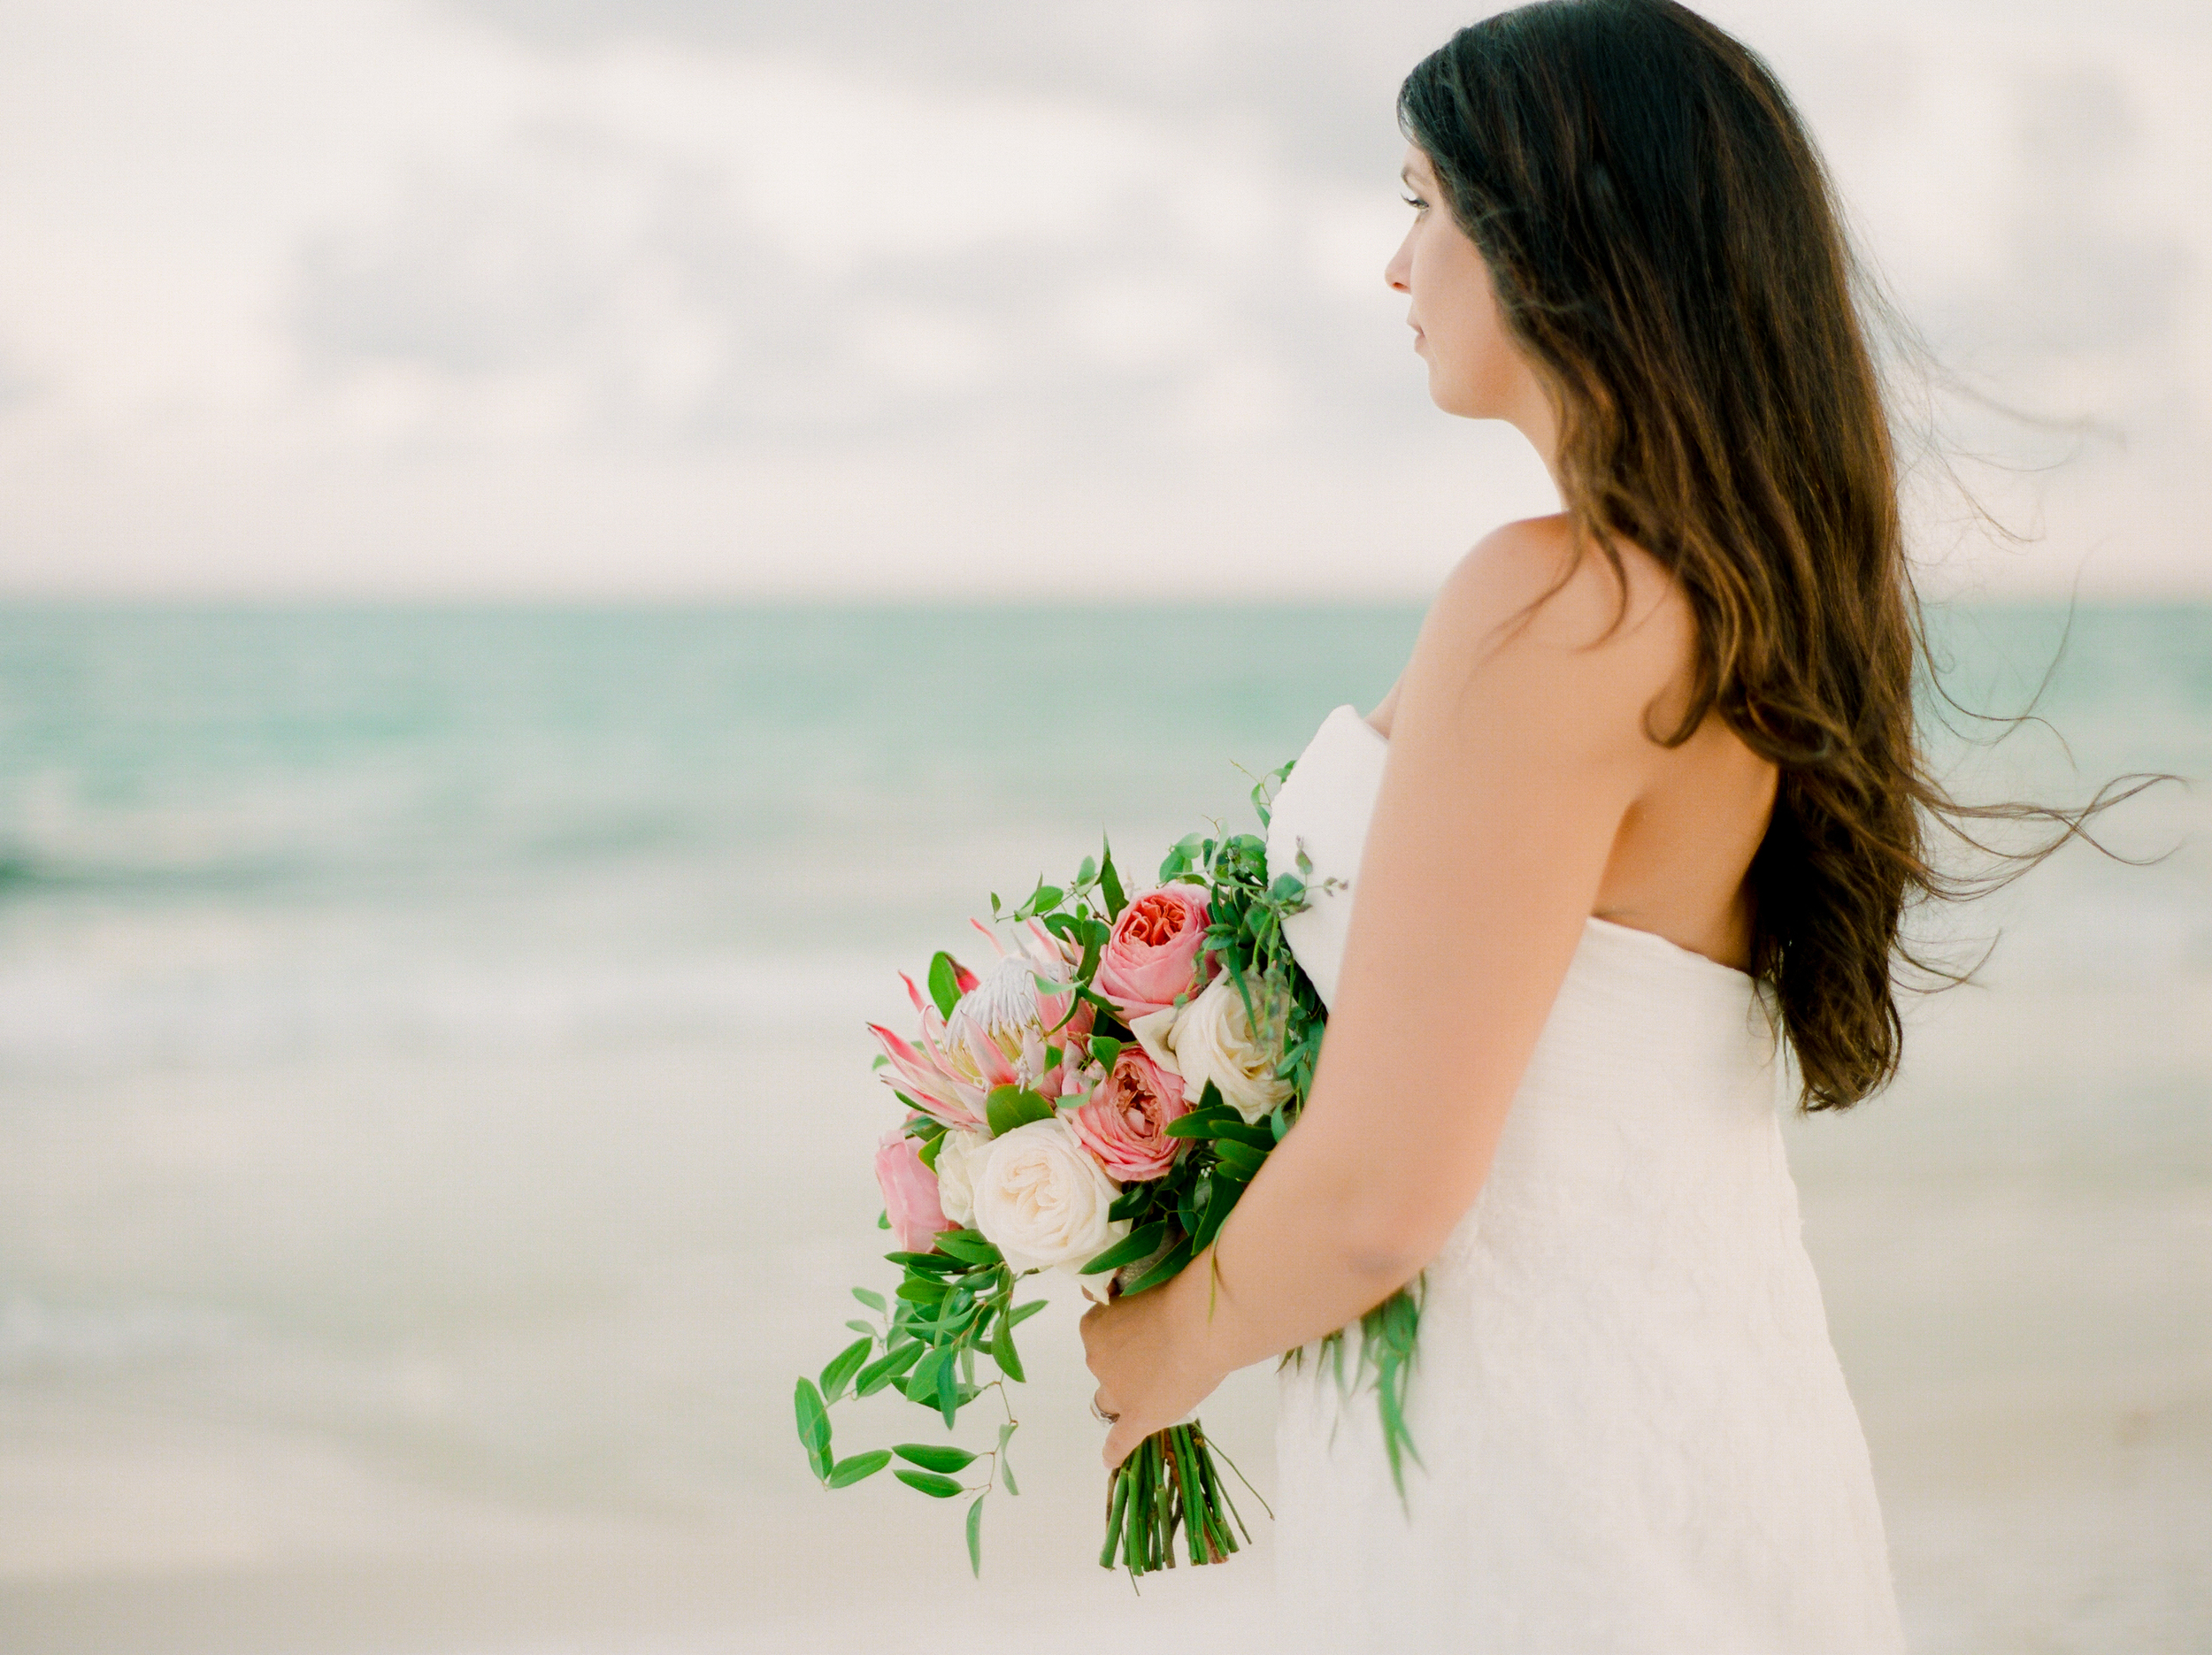 30a beach wedding | Kaylie B. Poplin Photography | Florida fine art wedding photographer